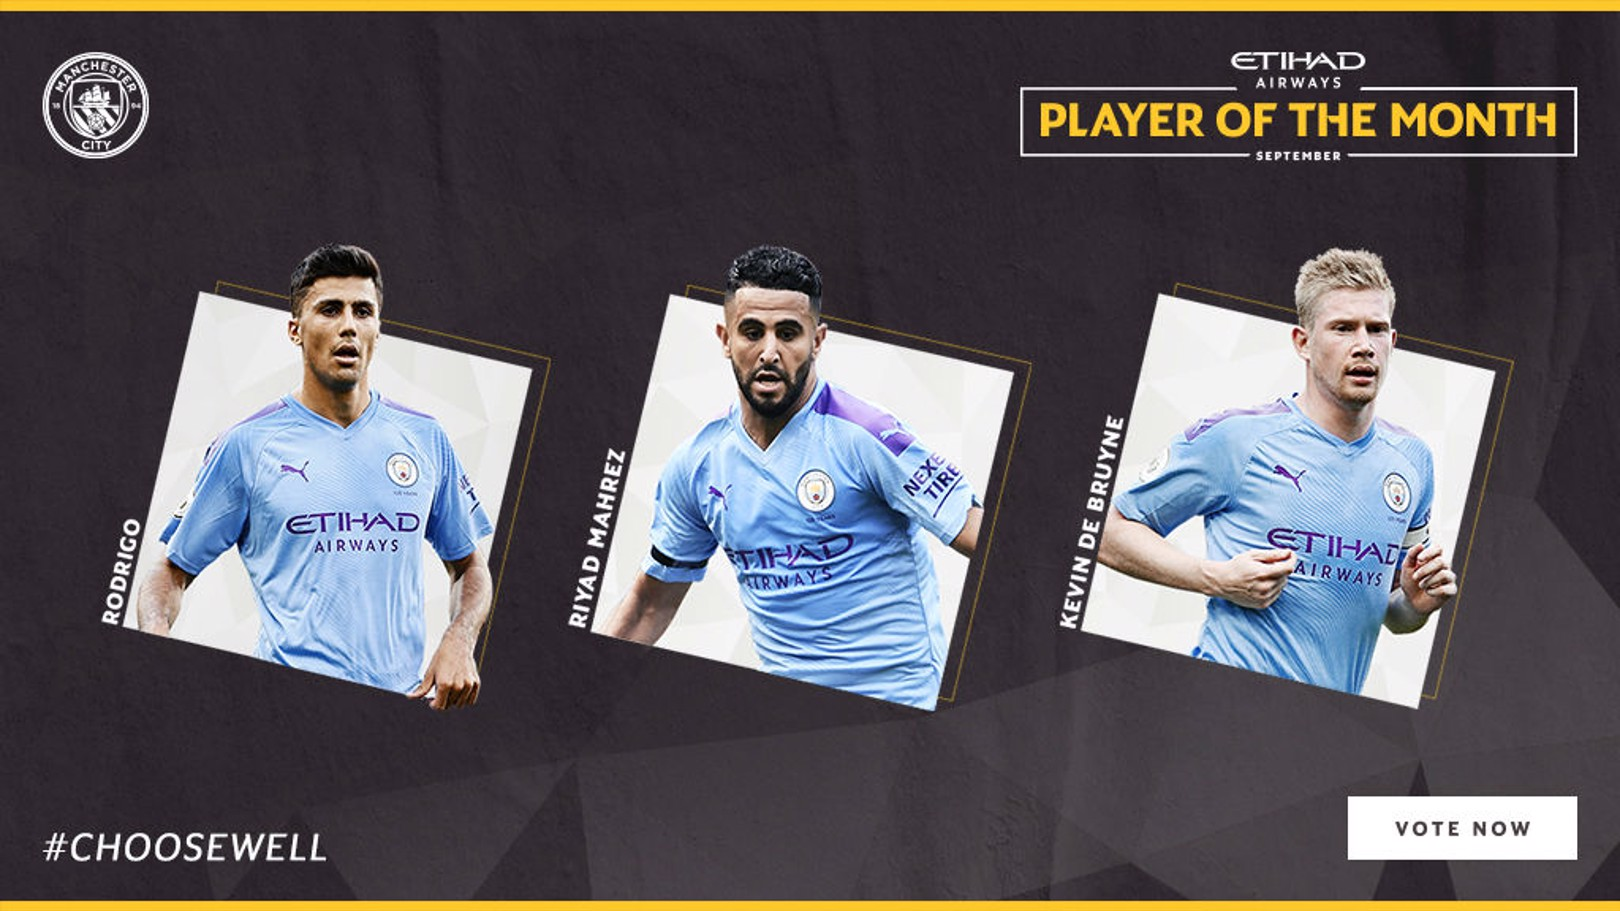 Nominasi Etihad Player Of The Month